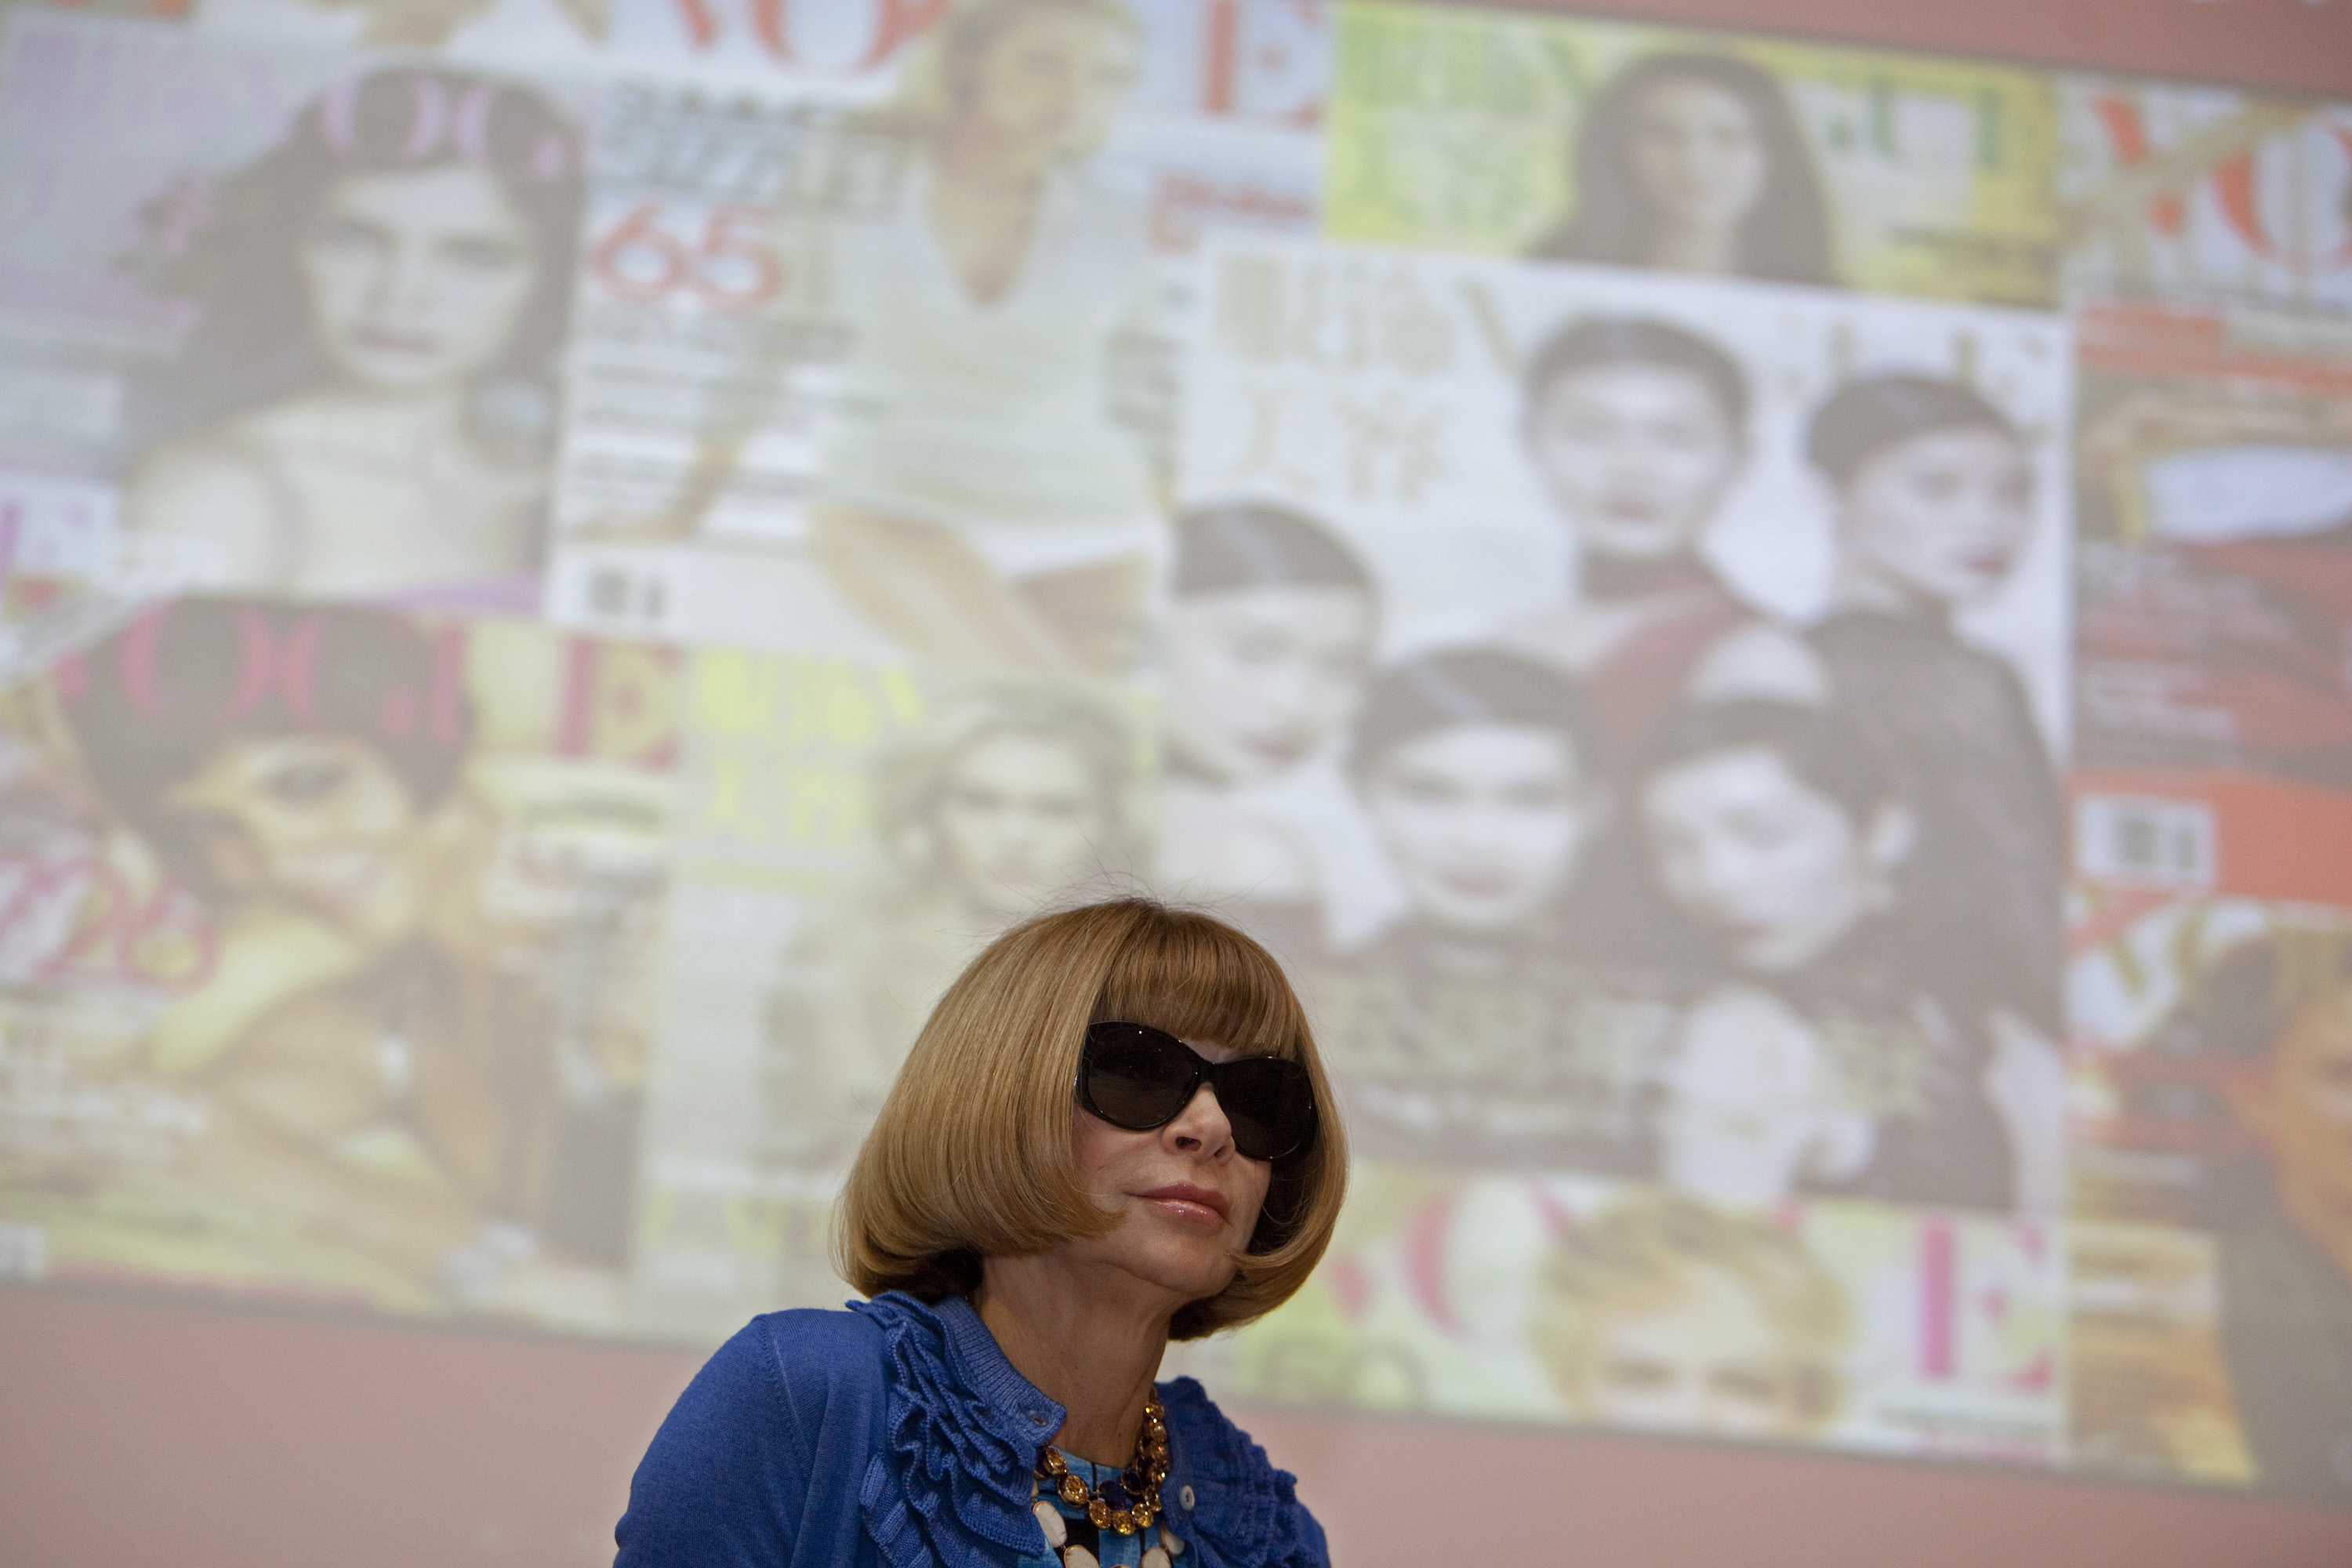 Vogue Magazine Editor-In-Chief Anna Wintour on stage